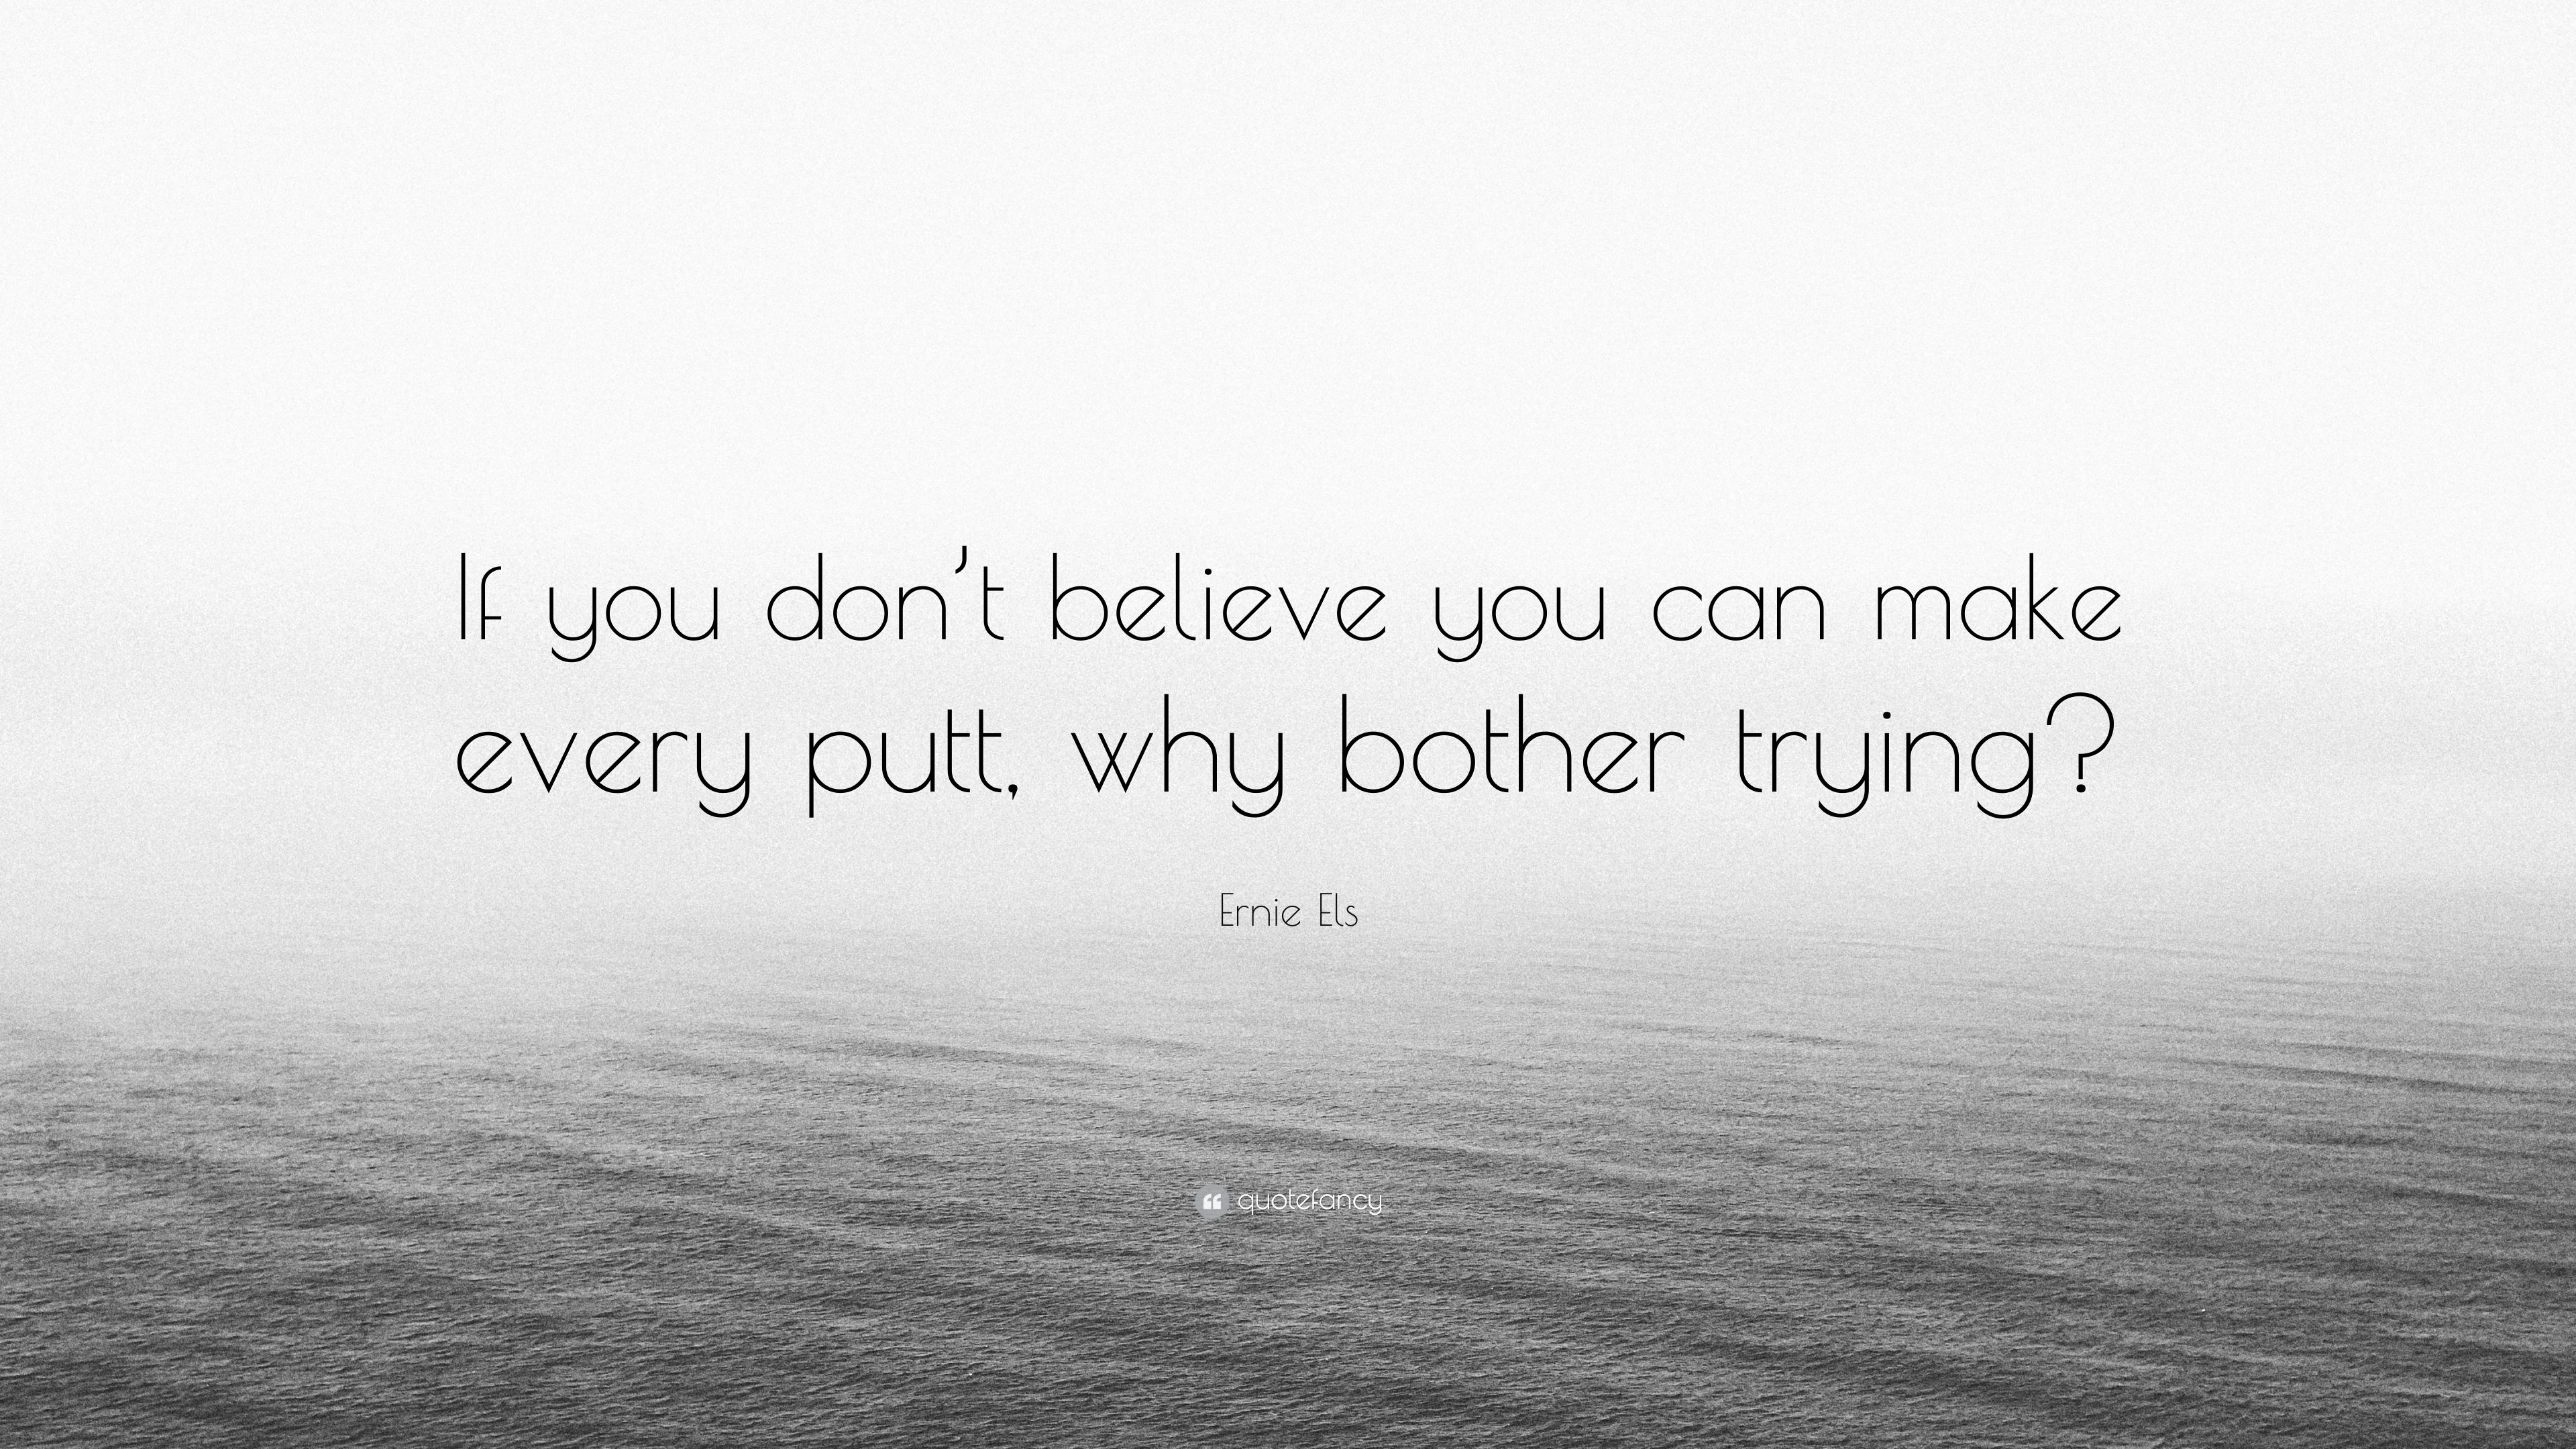 Ernie Els Quote If You Dont Believe You Can Make Every Putt Why